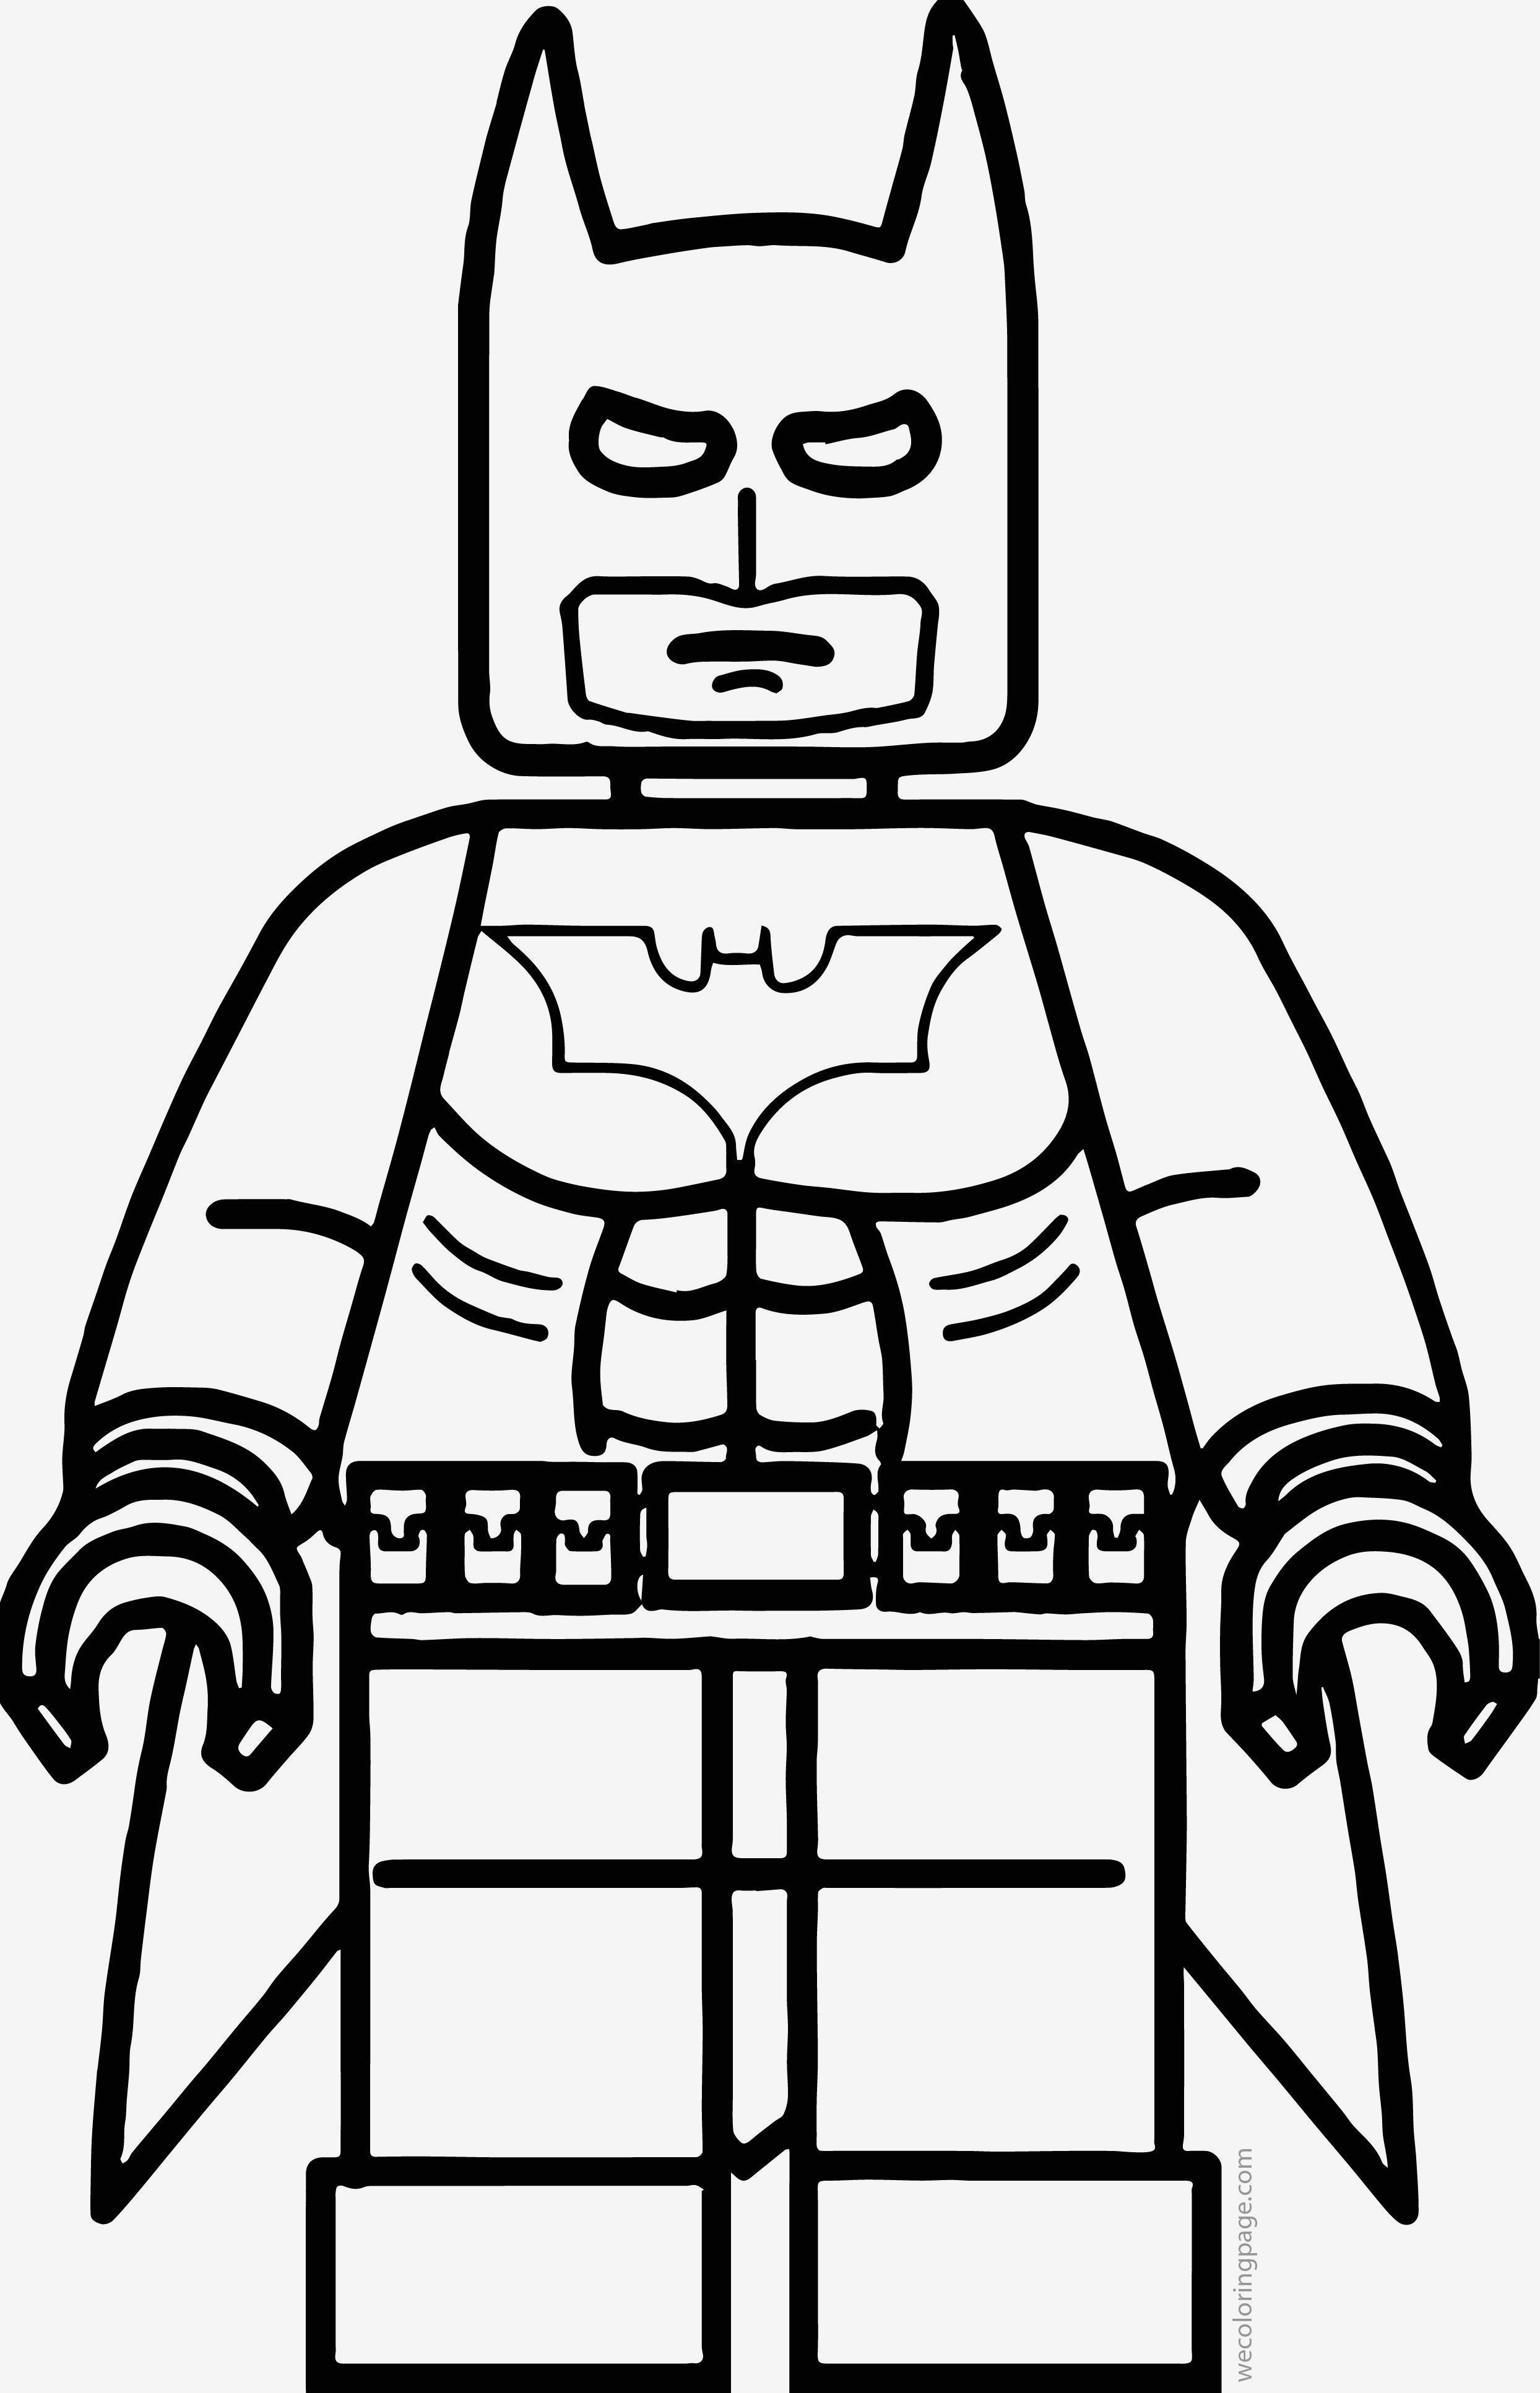 99 Inspirational Coloring Pages Lego Batman Floor Batman Coloring Floor Inspirational Pages In 2020 Lego Coloring Pages Lego Movie Coloring Pages Lego Coloring